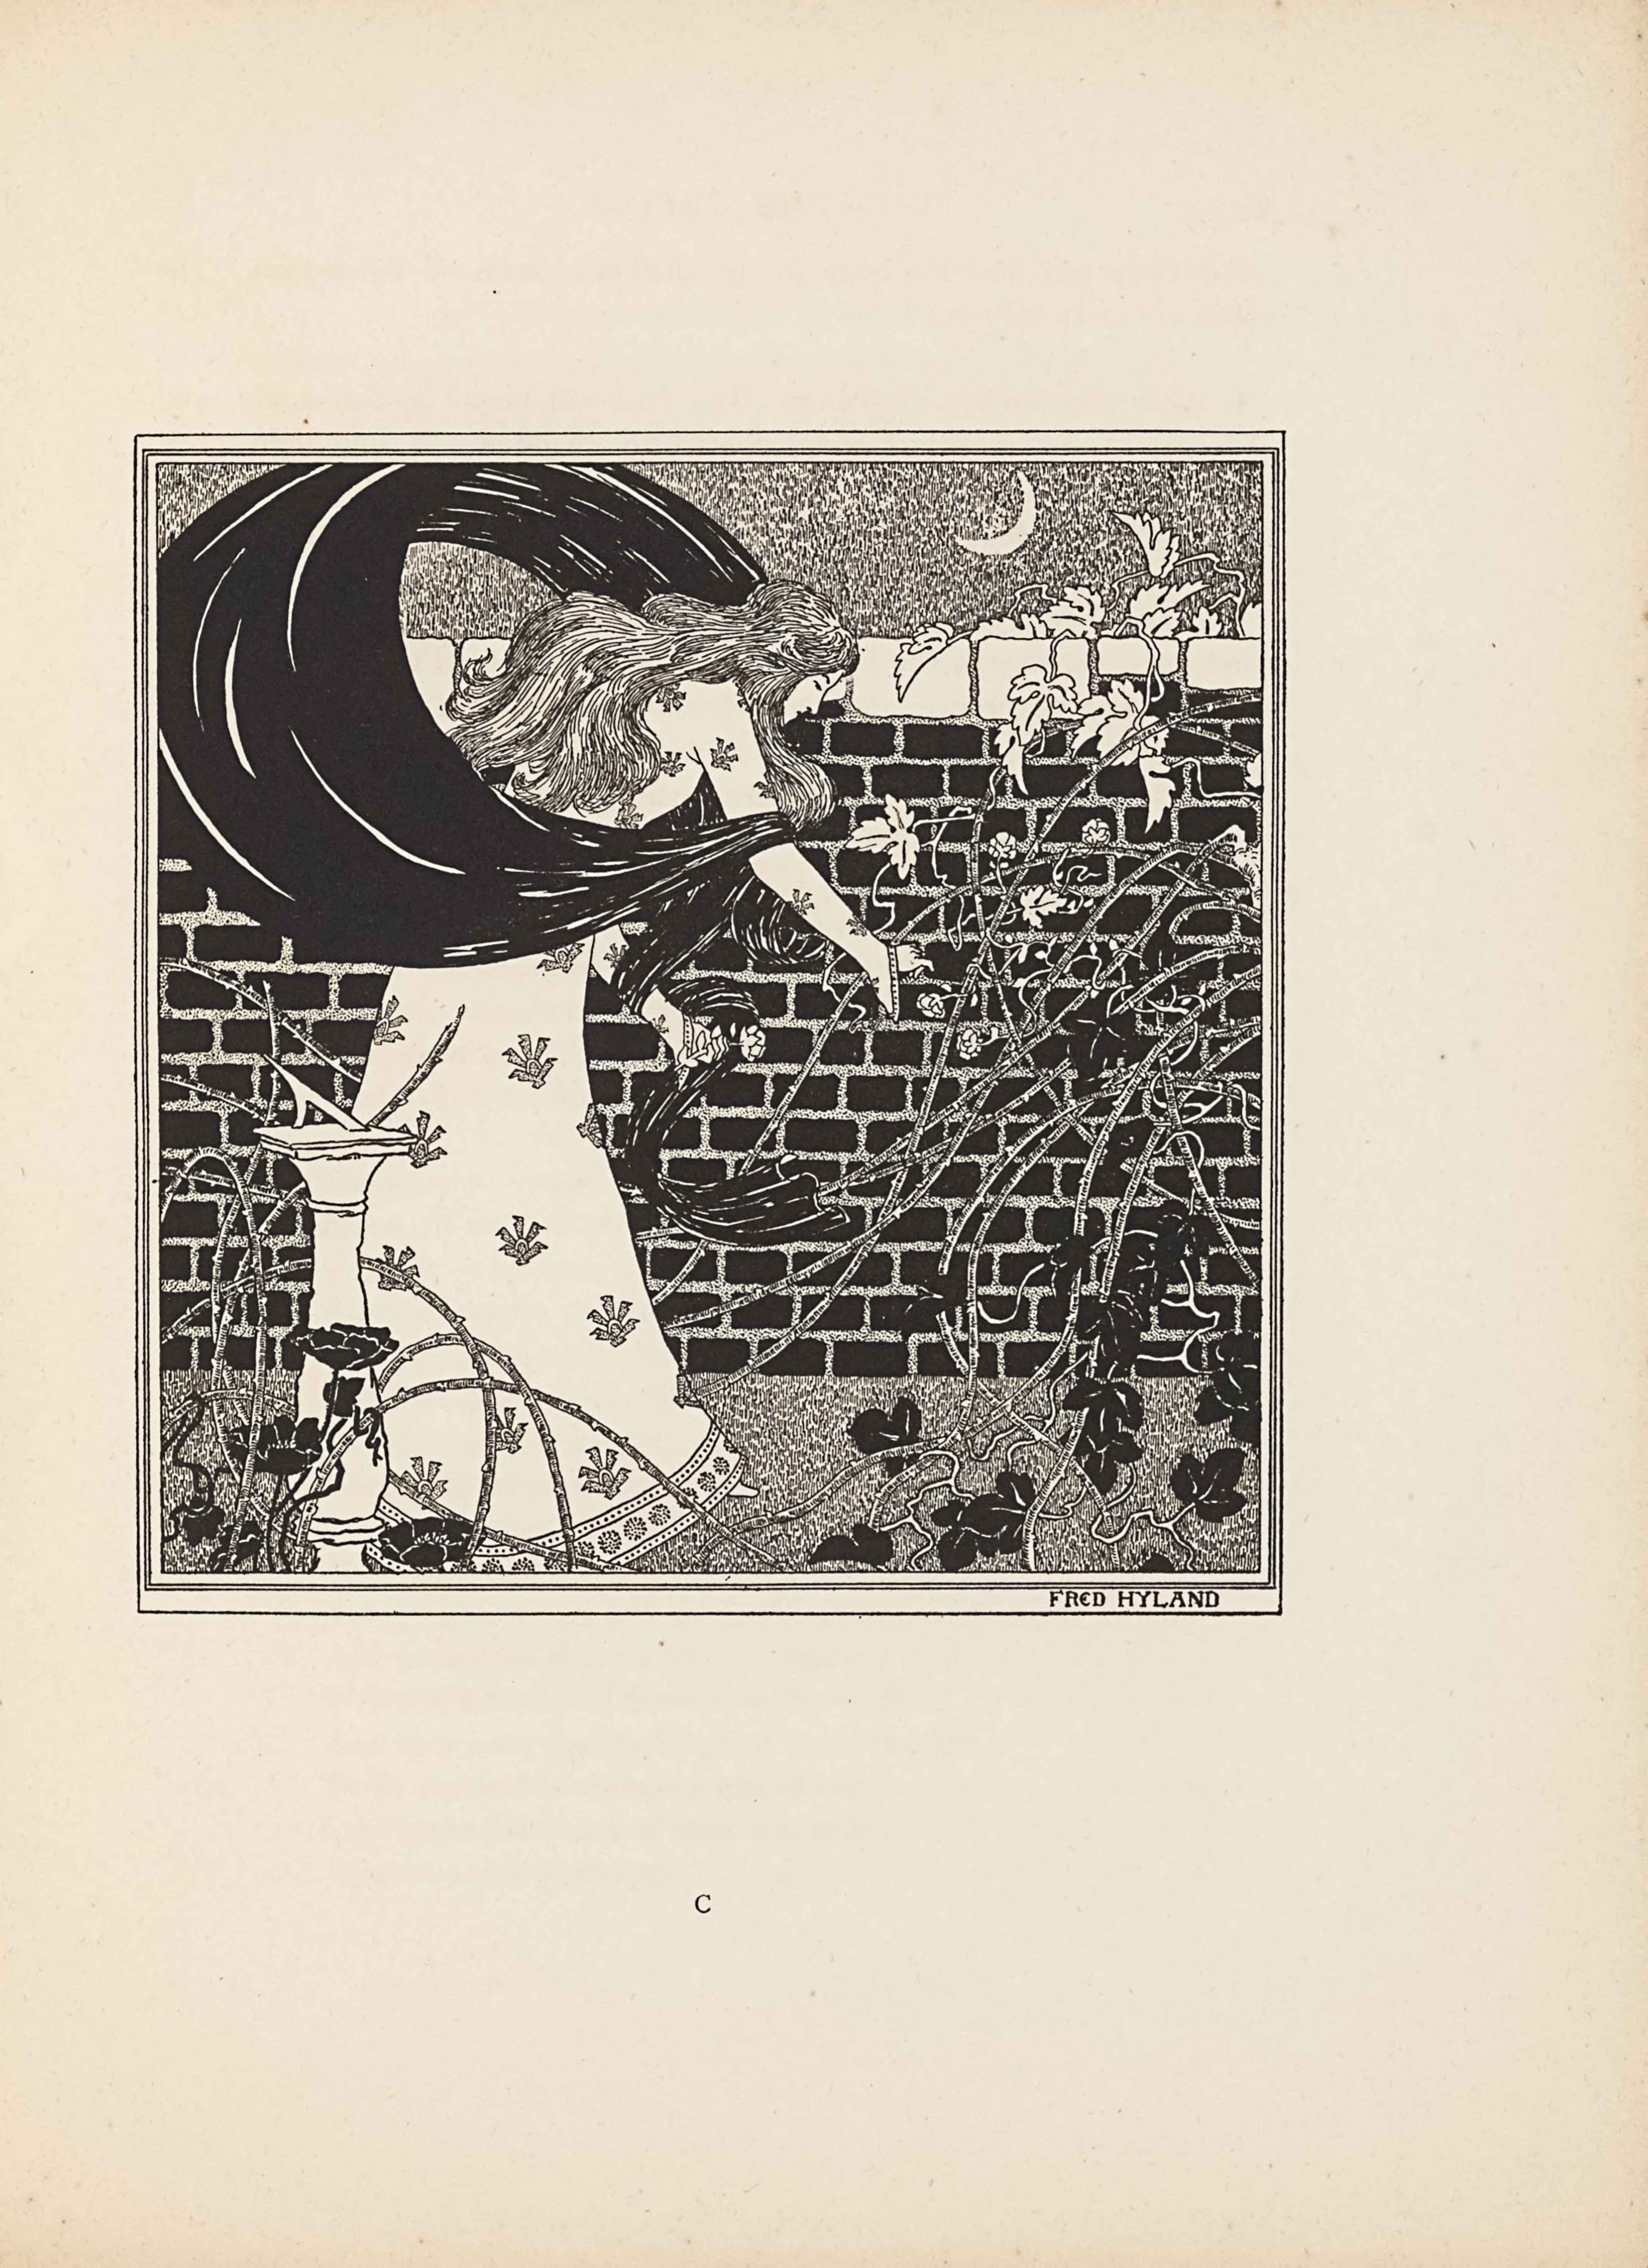 """The line-block reproduction after a pen and ink sketch is contained within a rectangular lined border and is in portrait orientation. The image shows a woman inside a walled garden at night. The top fifth of the image shows the stippled grey sky, with a waxing crescent moon in the upper right. The black brick wall takes up the middle three-fifths of the image; the top bricks are white irregular blocks. In front wall, there is grey grass stippled in the same way as the night sky. Vines and brambles coil from the bottom of the image up the wall and over the top. The vines on the ground and at the bottom of the wall are black while the ones at the top of the wall are white. On the left side of the image stands a white column at about waist height with a sundial on top. The woman stands in between a sundial and a brick wall, facing right in profile and bending over to grasp the fines and brambles in front of her. She has a white flower in her left hand and is picking a flower with her right hand. She is bowed over so that her head is at the same level as the top of the wall. She has long wavy hair that reaches down past her shoulders. She is wearing a white dress with long sleeves. Her dress is patterned with an evenly spaced floral design consisting of five petals diverging from a central point. At the bottom right within the outer edge of the border reads the artist's name: """"FRED HYLAND"""" [caps]."""